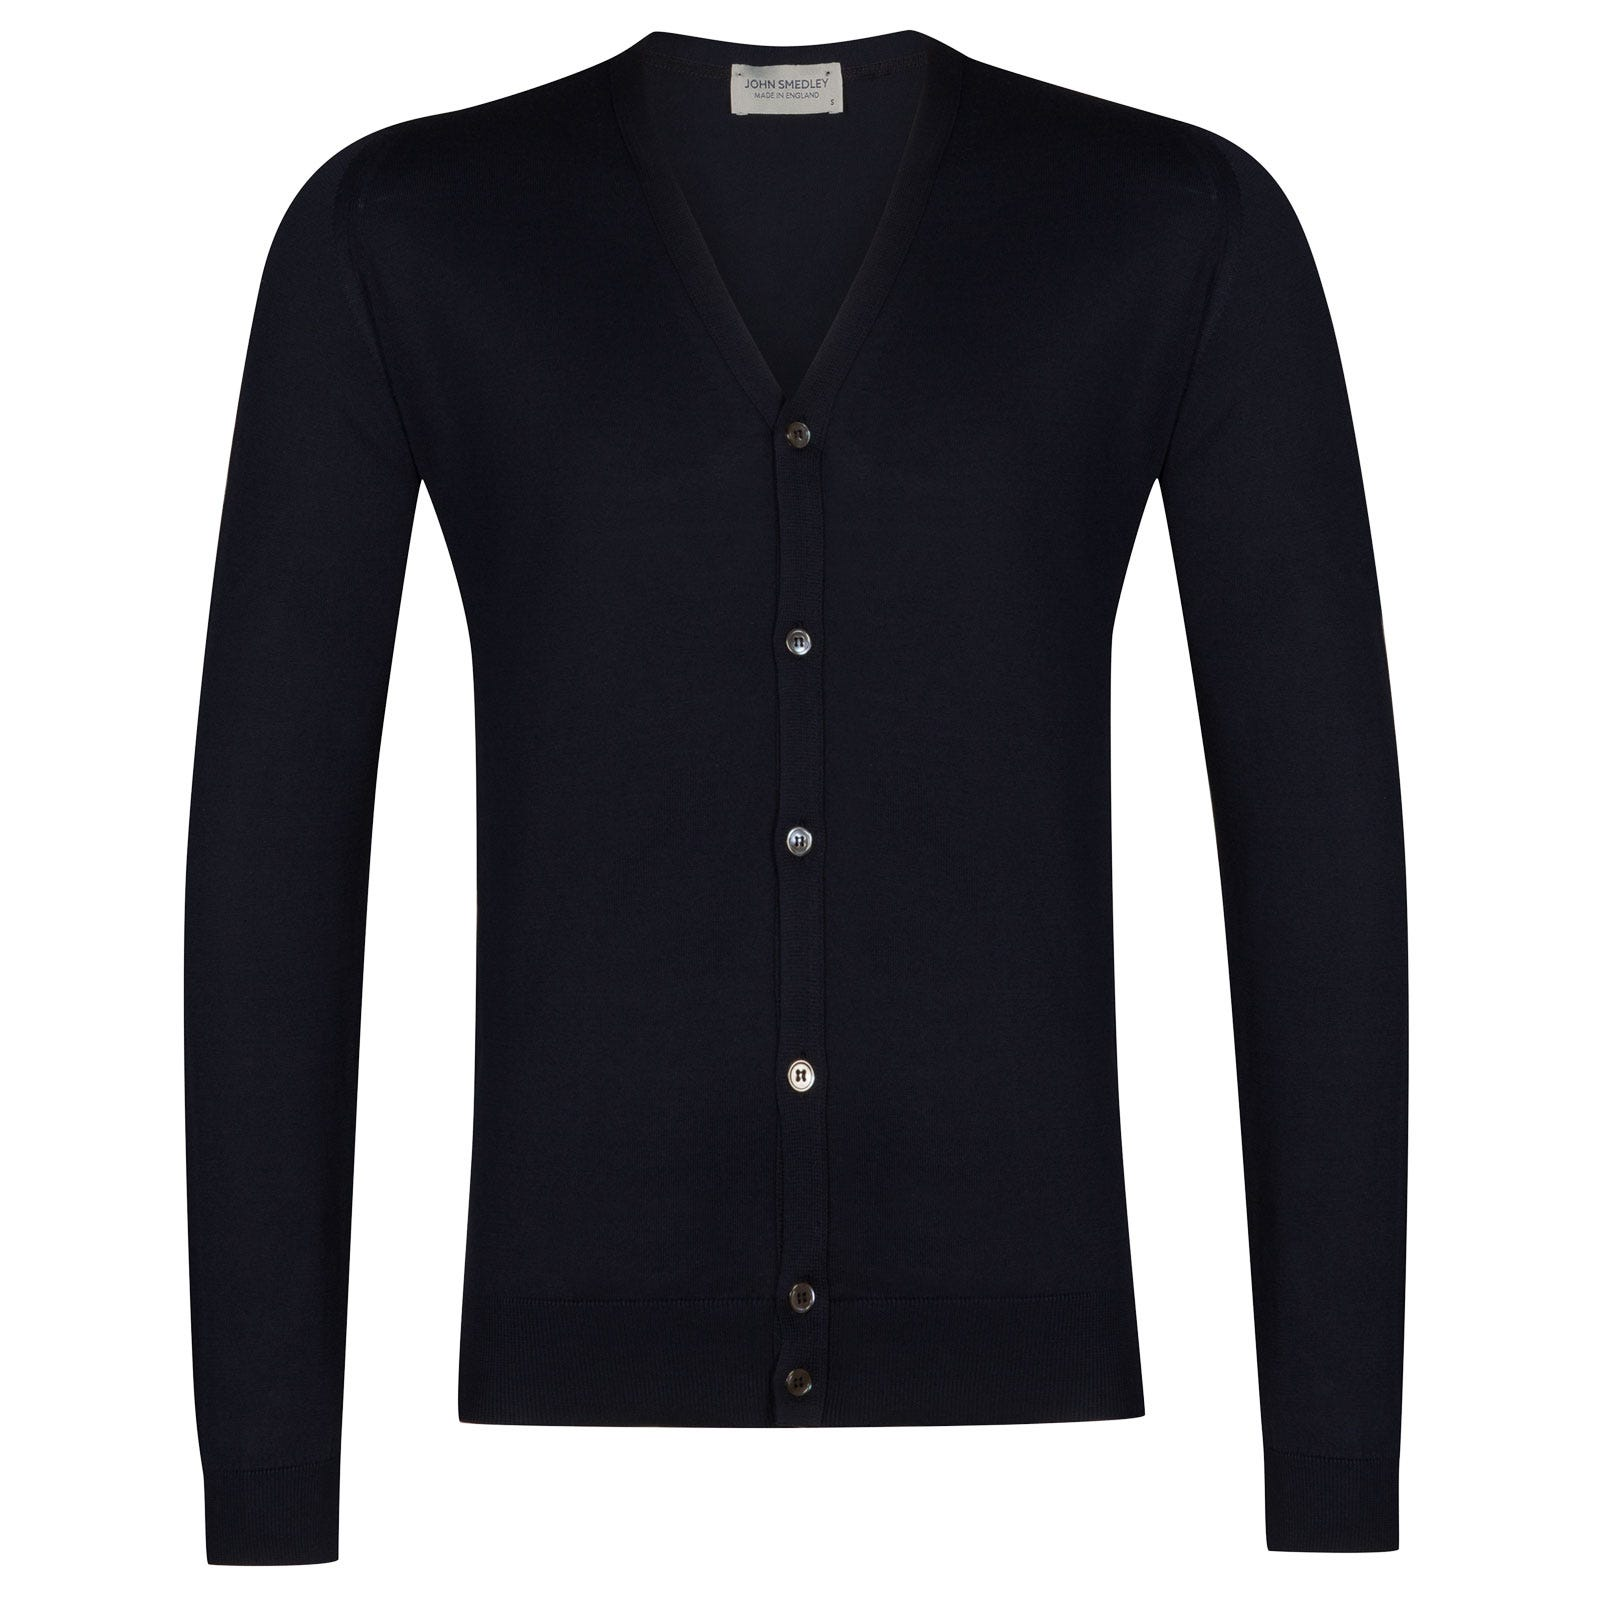 John Smedley whitchurch Sea Island Cotton Cardigan in Navy-S